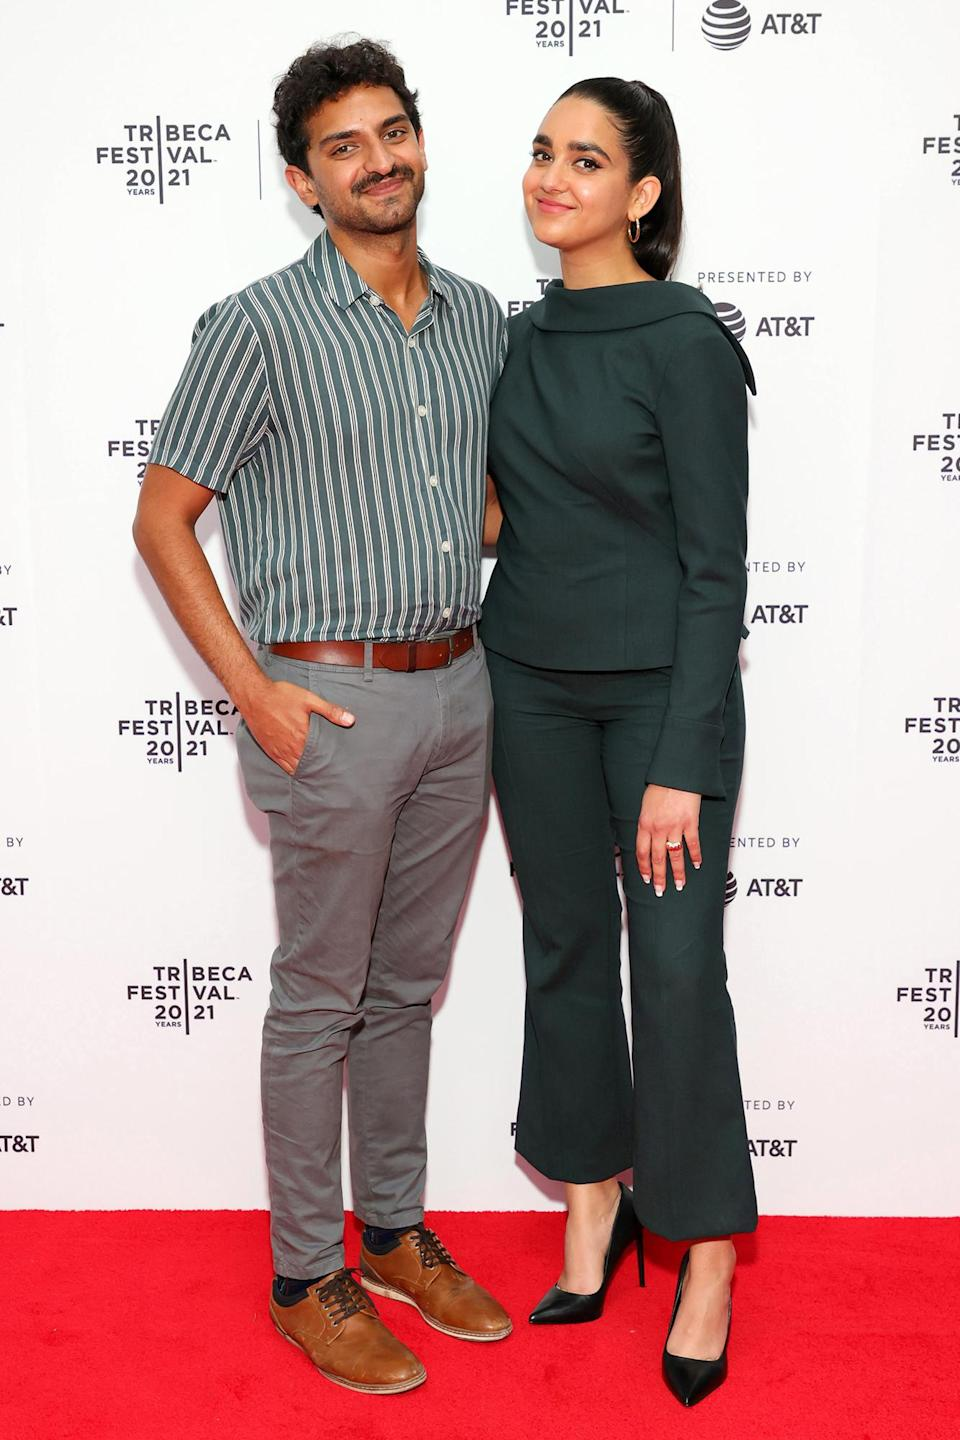 <p>Costars Karan Soni and Geraldine Viswanathan pose together at the Tribeca Film Festival Premiere of <i>7 Days</i> on June 10 in Brooklyn. </p>